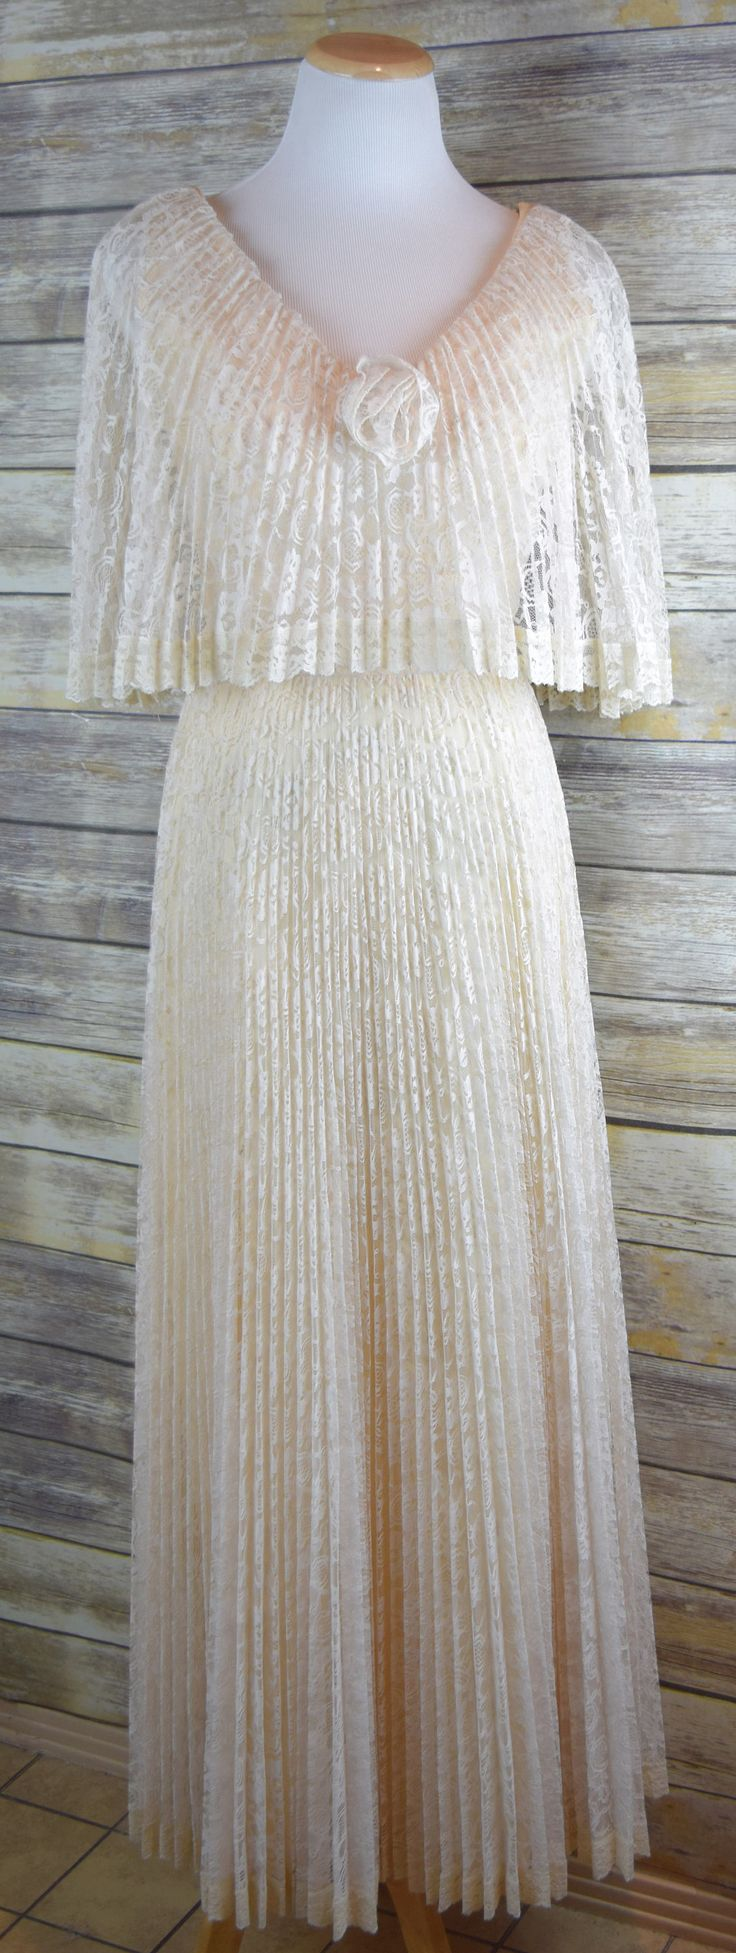 Vtg Women's 10 Pale yellow/Cream Accordion Pleat Lace Boho Betha Collar Wedding/Festival Dress by GVvintageswoon on Etsy